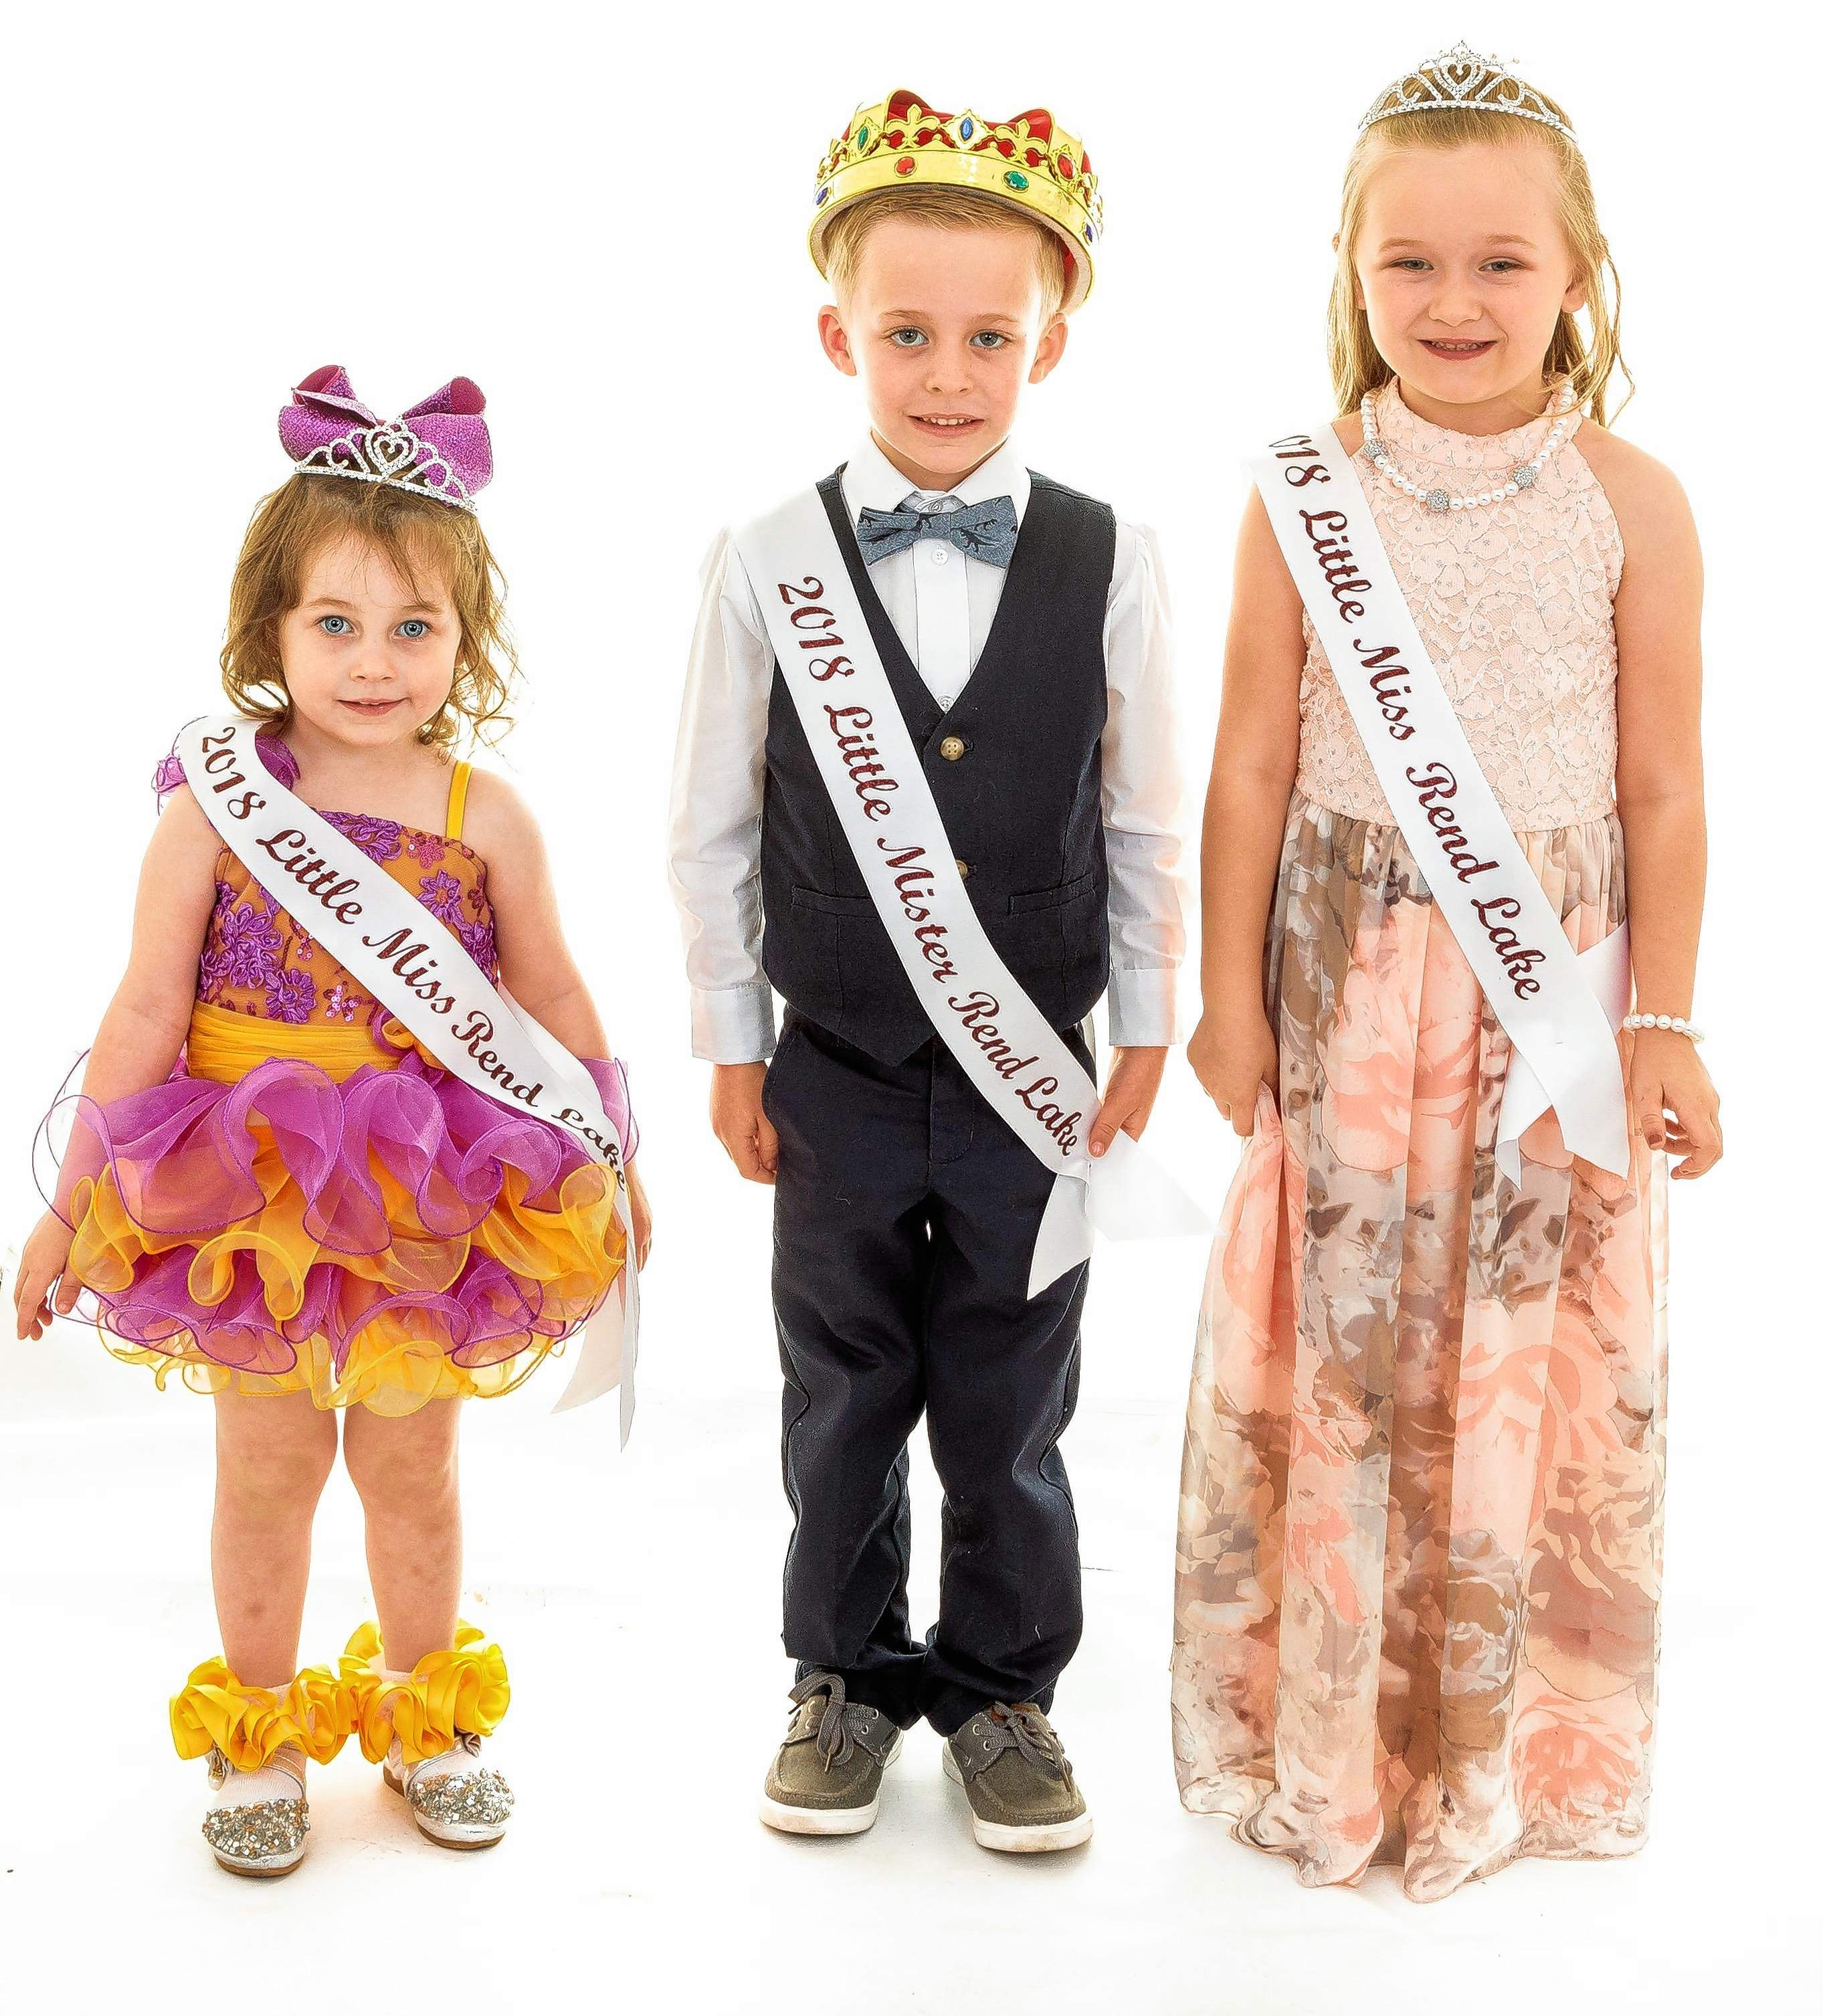 The Little Mrs. and Miss Rend Lake pageant winners were crowned on Friday evening. This year's royalty included (from left) Savannah Morris, age 2-4 winner; and Kyler Followell and Kynslee Perkins, age 5-8 winners.